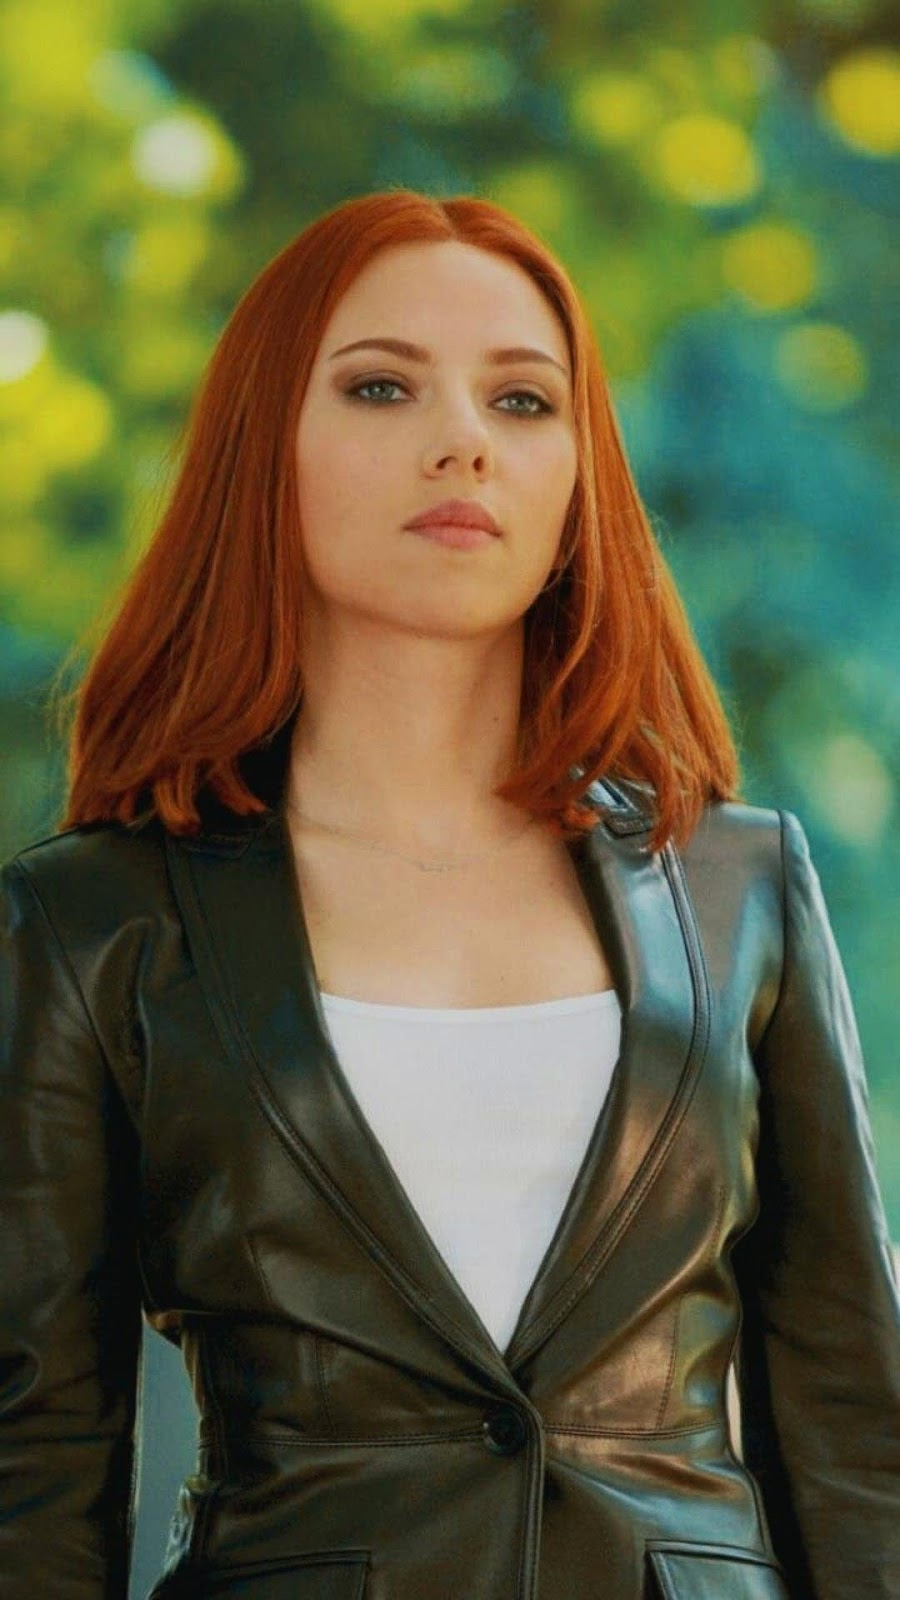 Black Widow Mobile Wallpaper sekertaris seksi